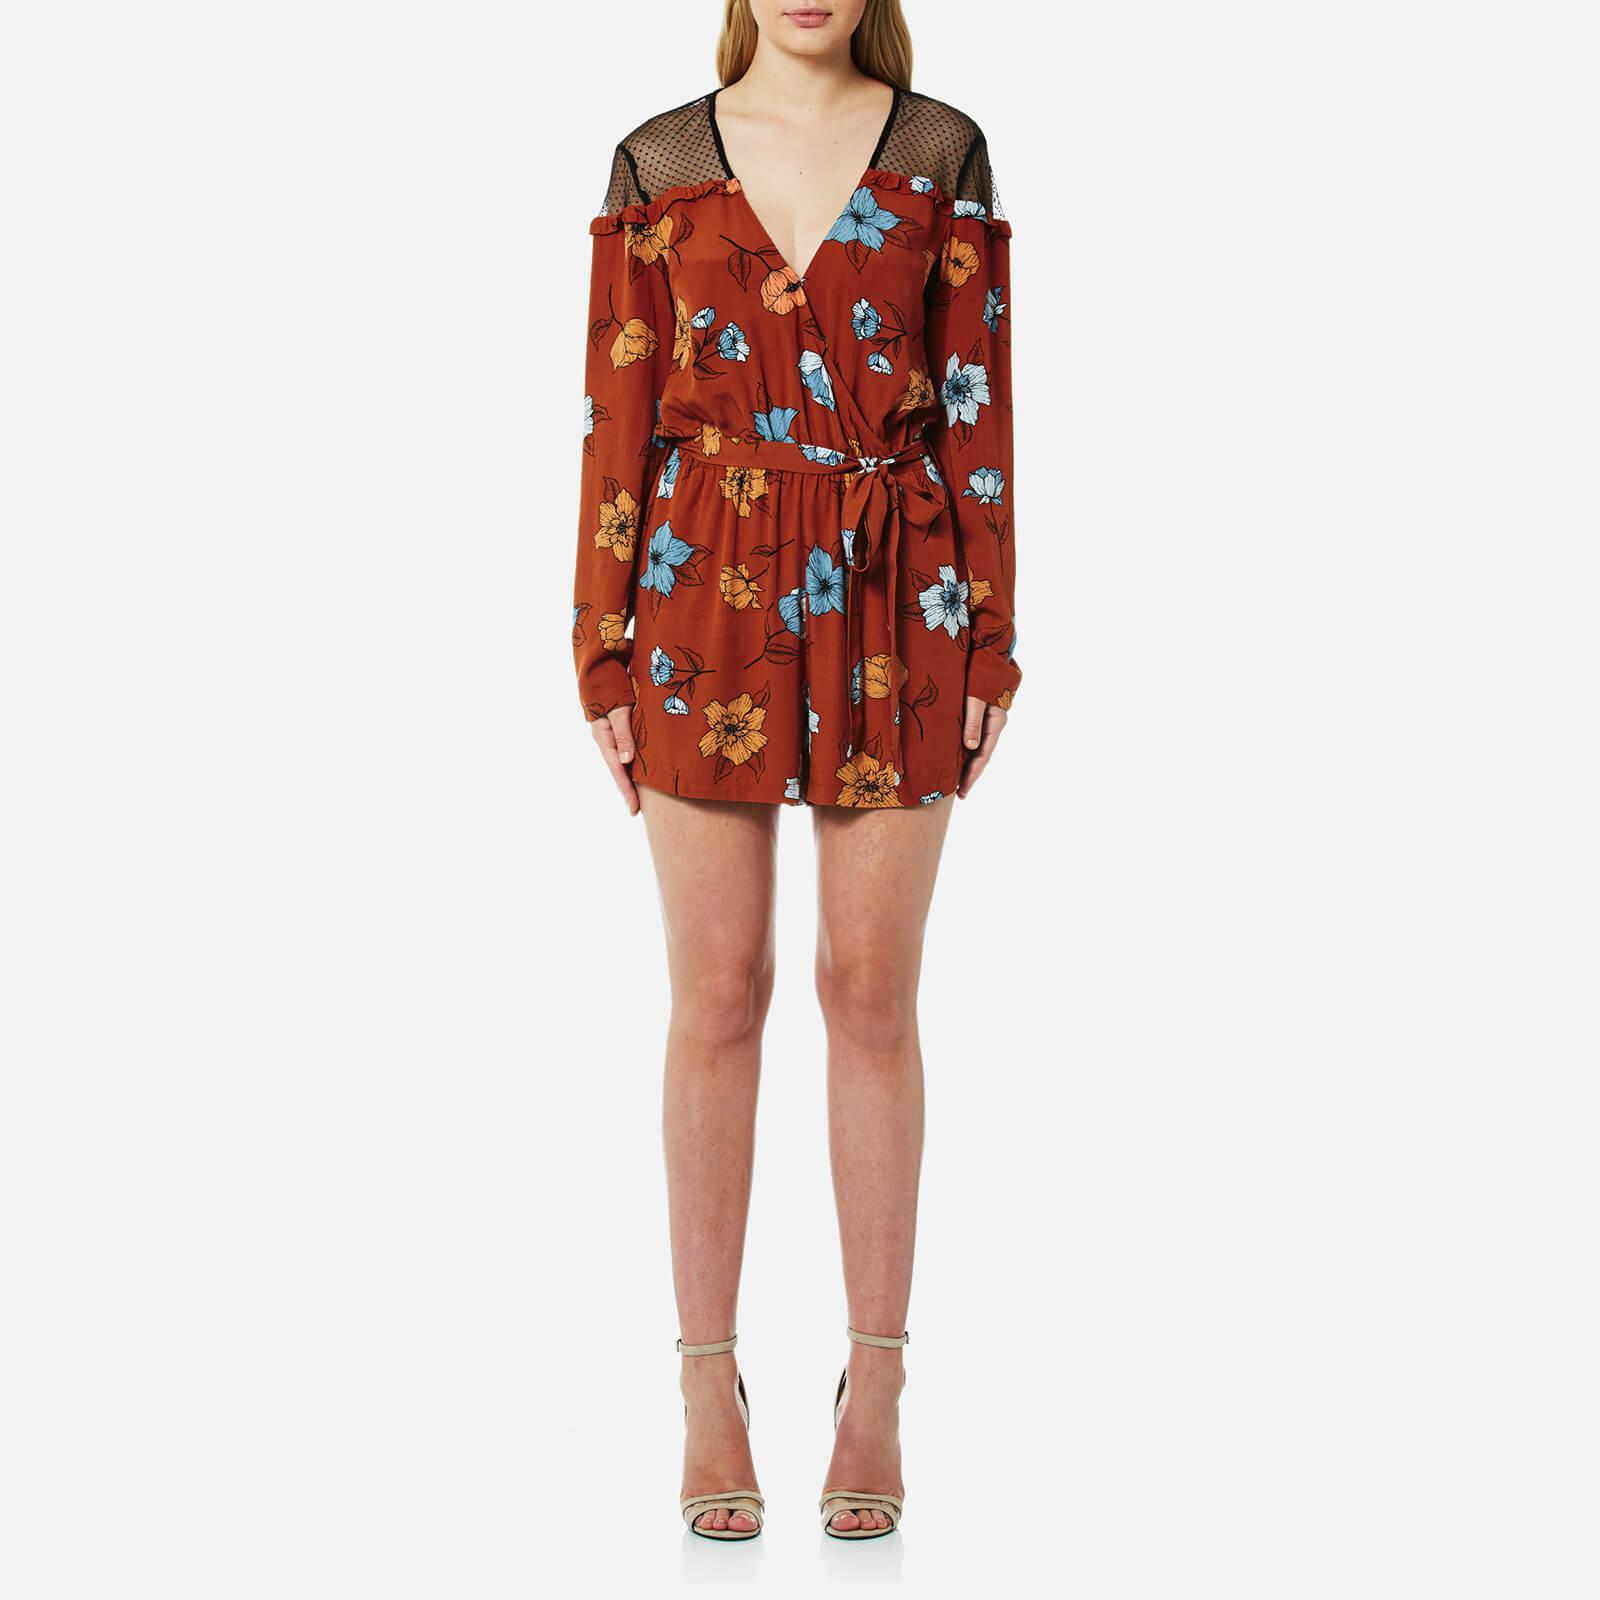 a3374a89a5 MINKPINK Ornate Playsuit in Red - Lyst